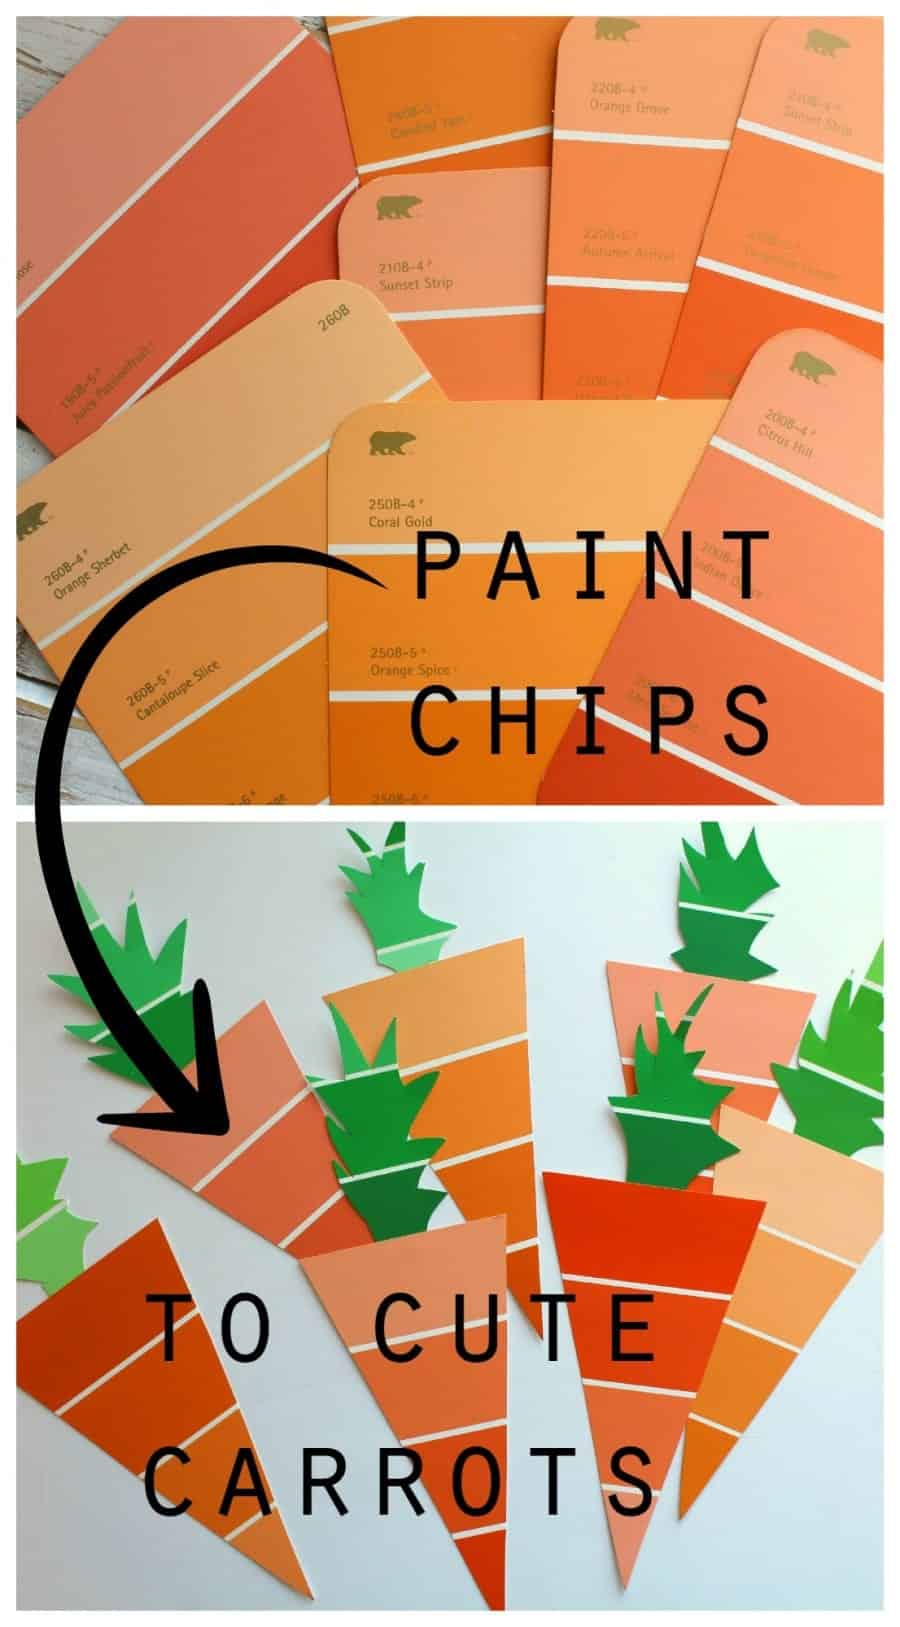 paint chips to cute carrots